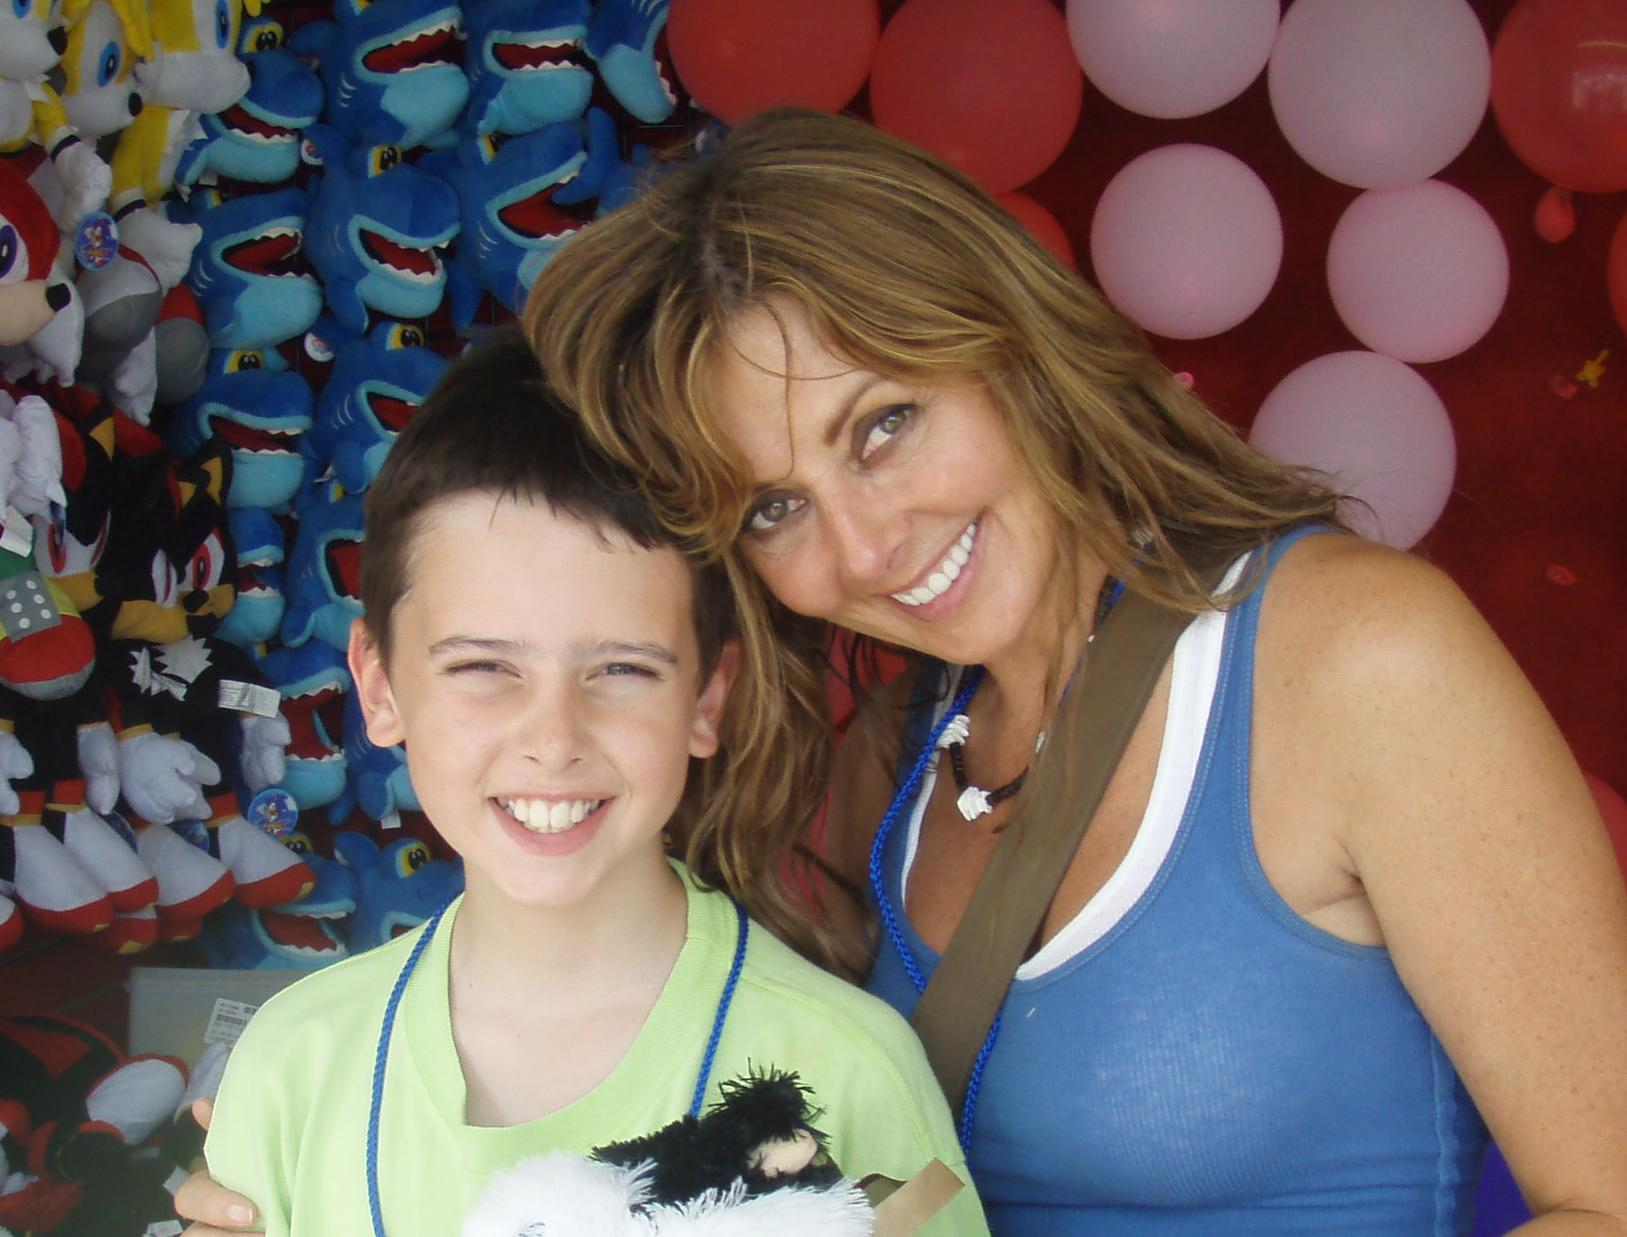 Me and my boy 7 years ago... sang #SpiderPig all day long x http://t.co/JnkLMRXlyz